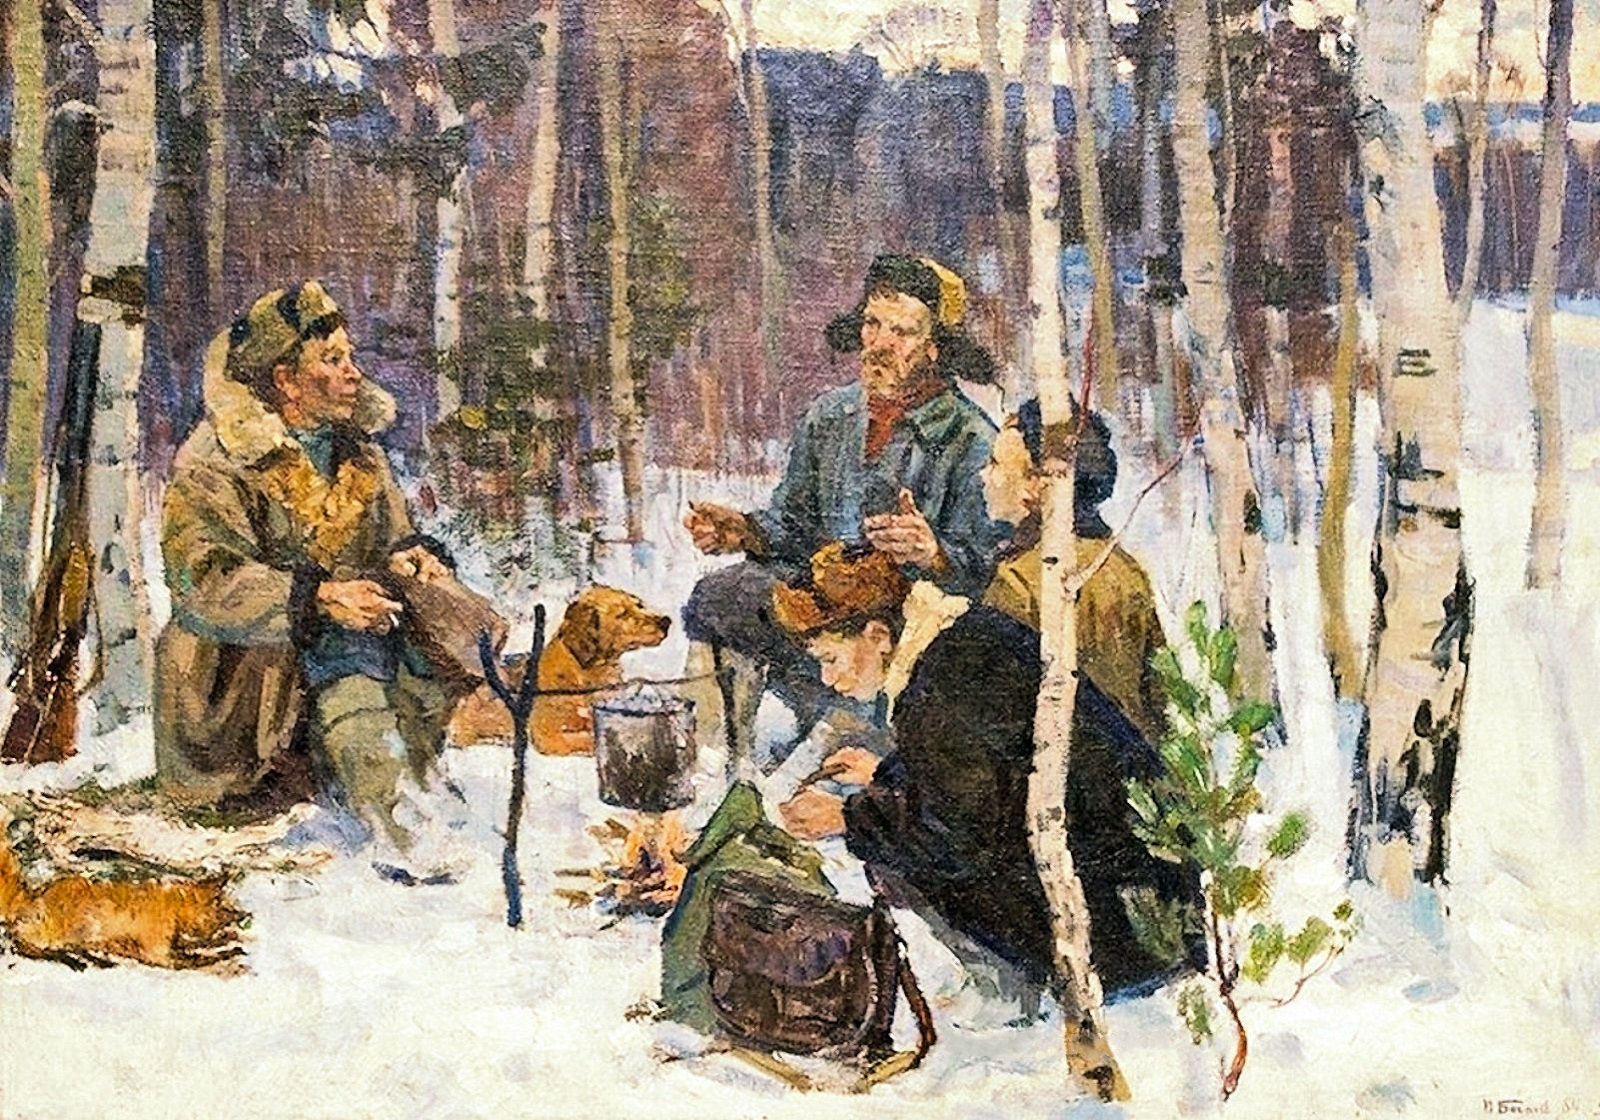 00-pyotr-bogachyov-hunters-taking-a-break-1964